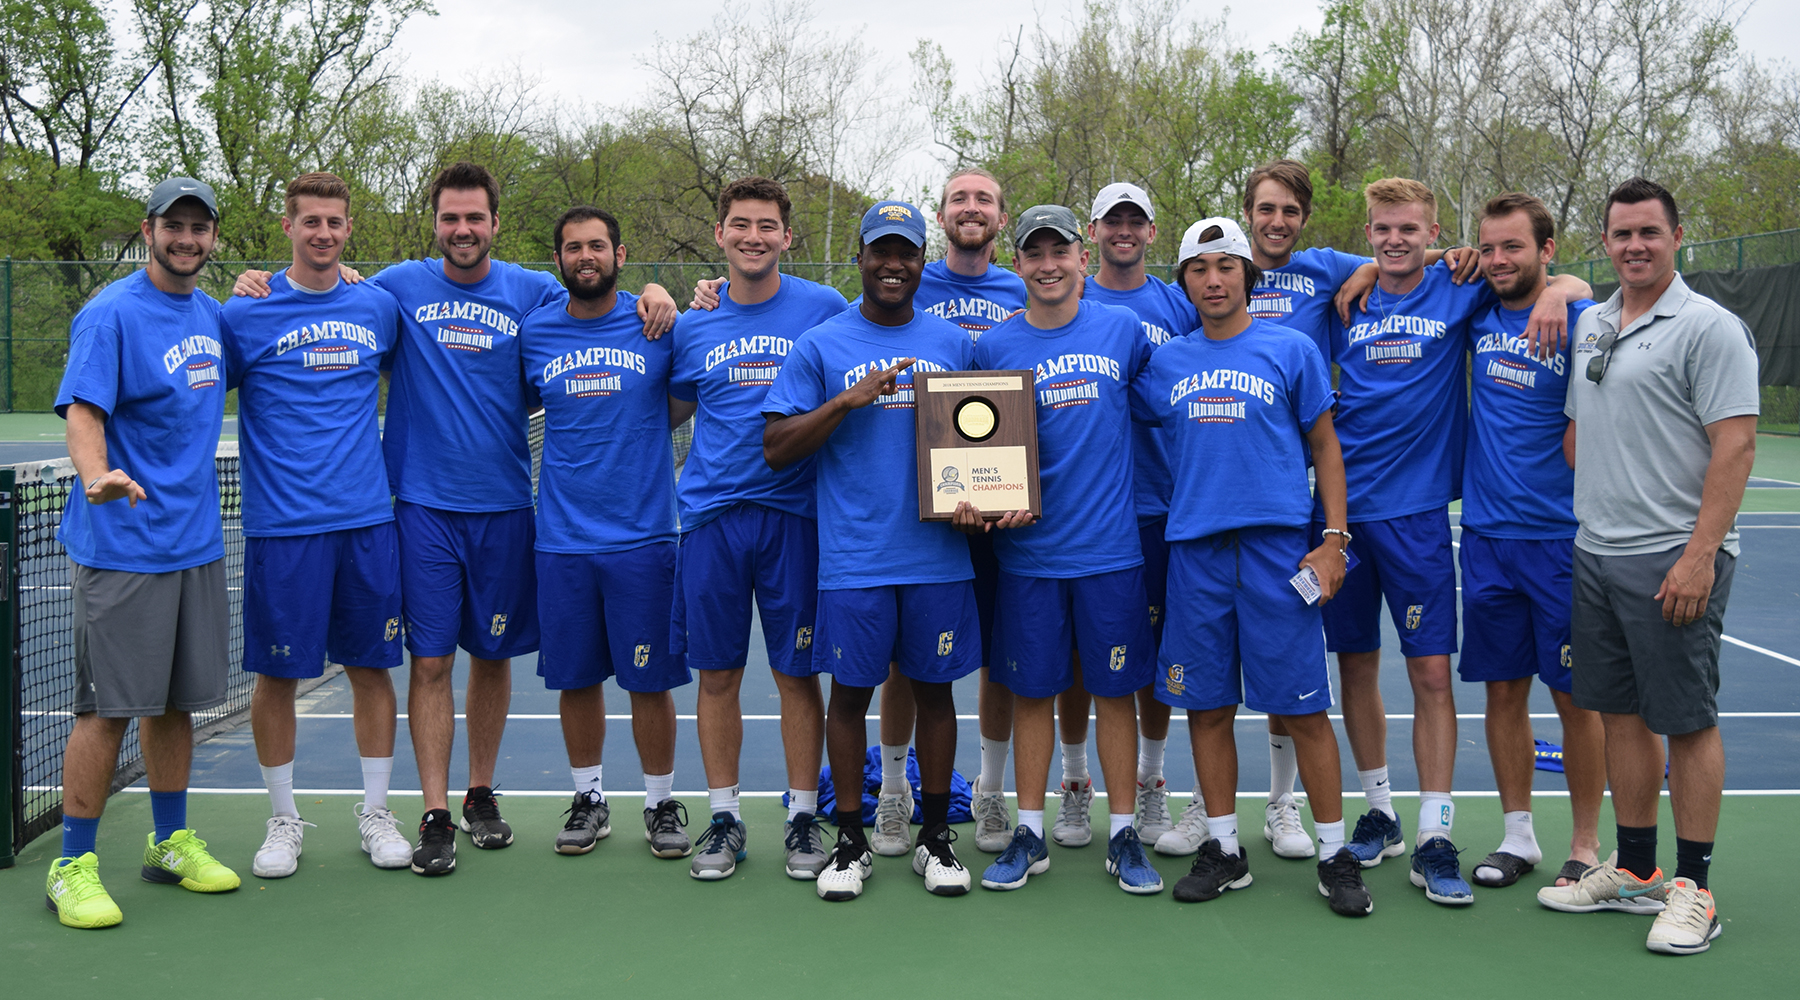 Thrice as Nice: Men's Tennis Takes Third Straight Landmark Conference Crown with 5-2 Win Over Scranton